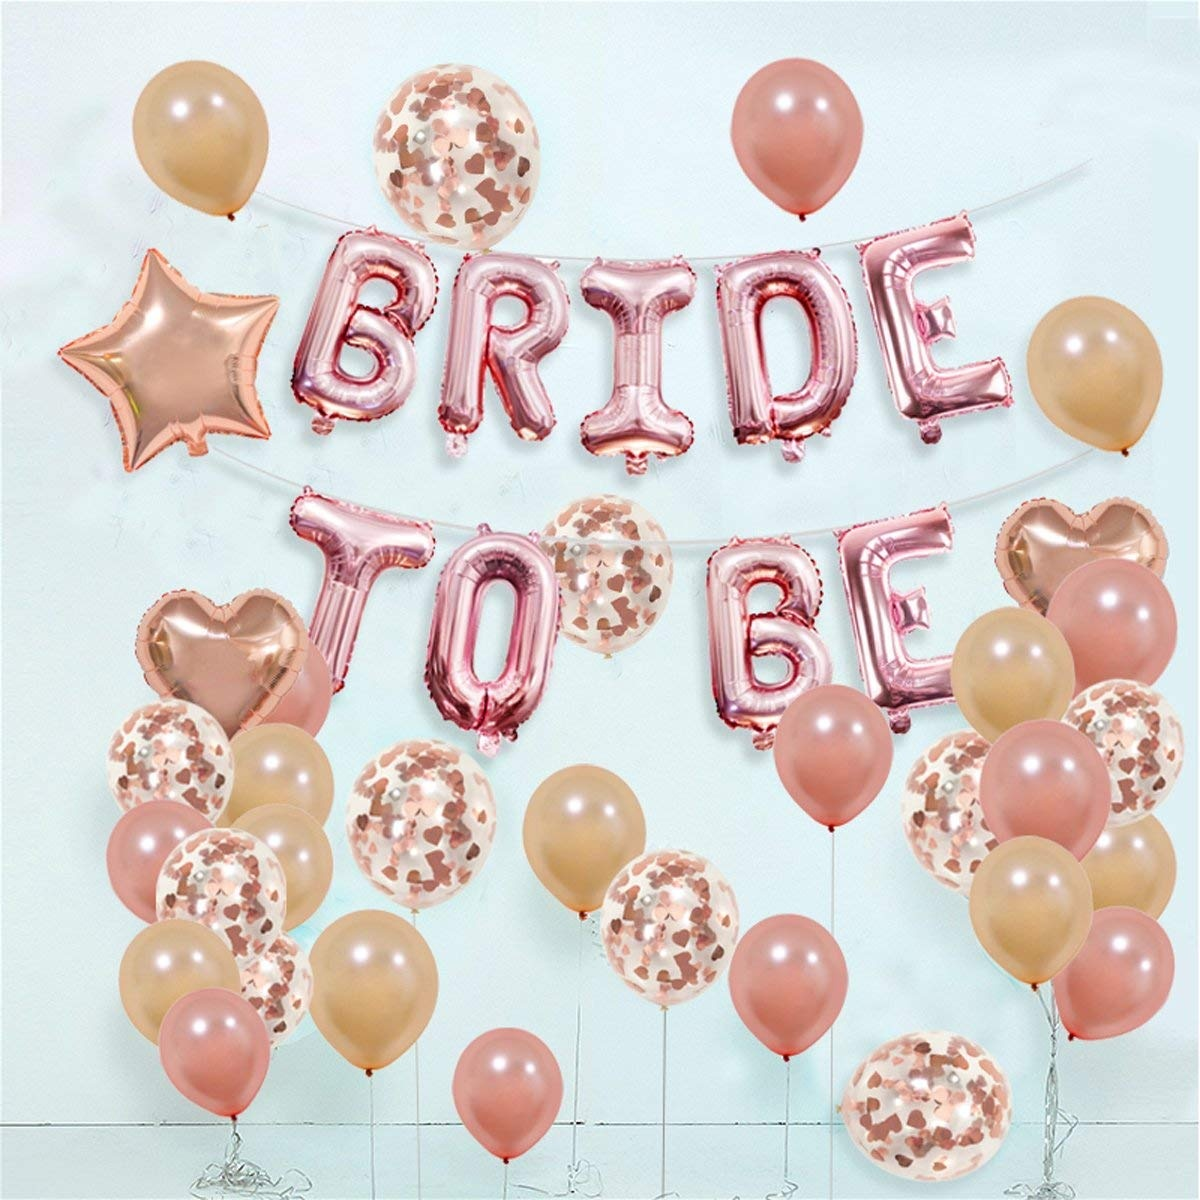 a55c26dc4436 KUMEED BRIDE TO BE Balloons Banner Rose Gold 16- Champagne Rose Gold Latex  Balloons-